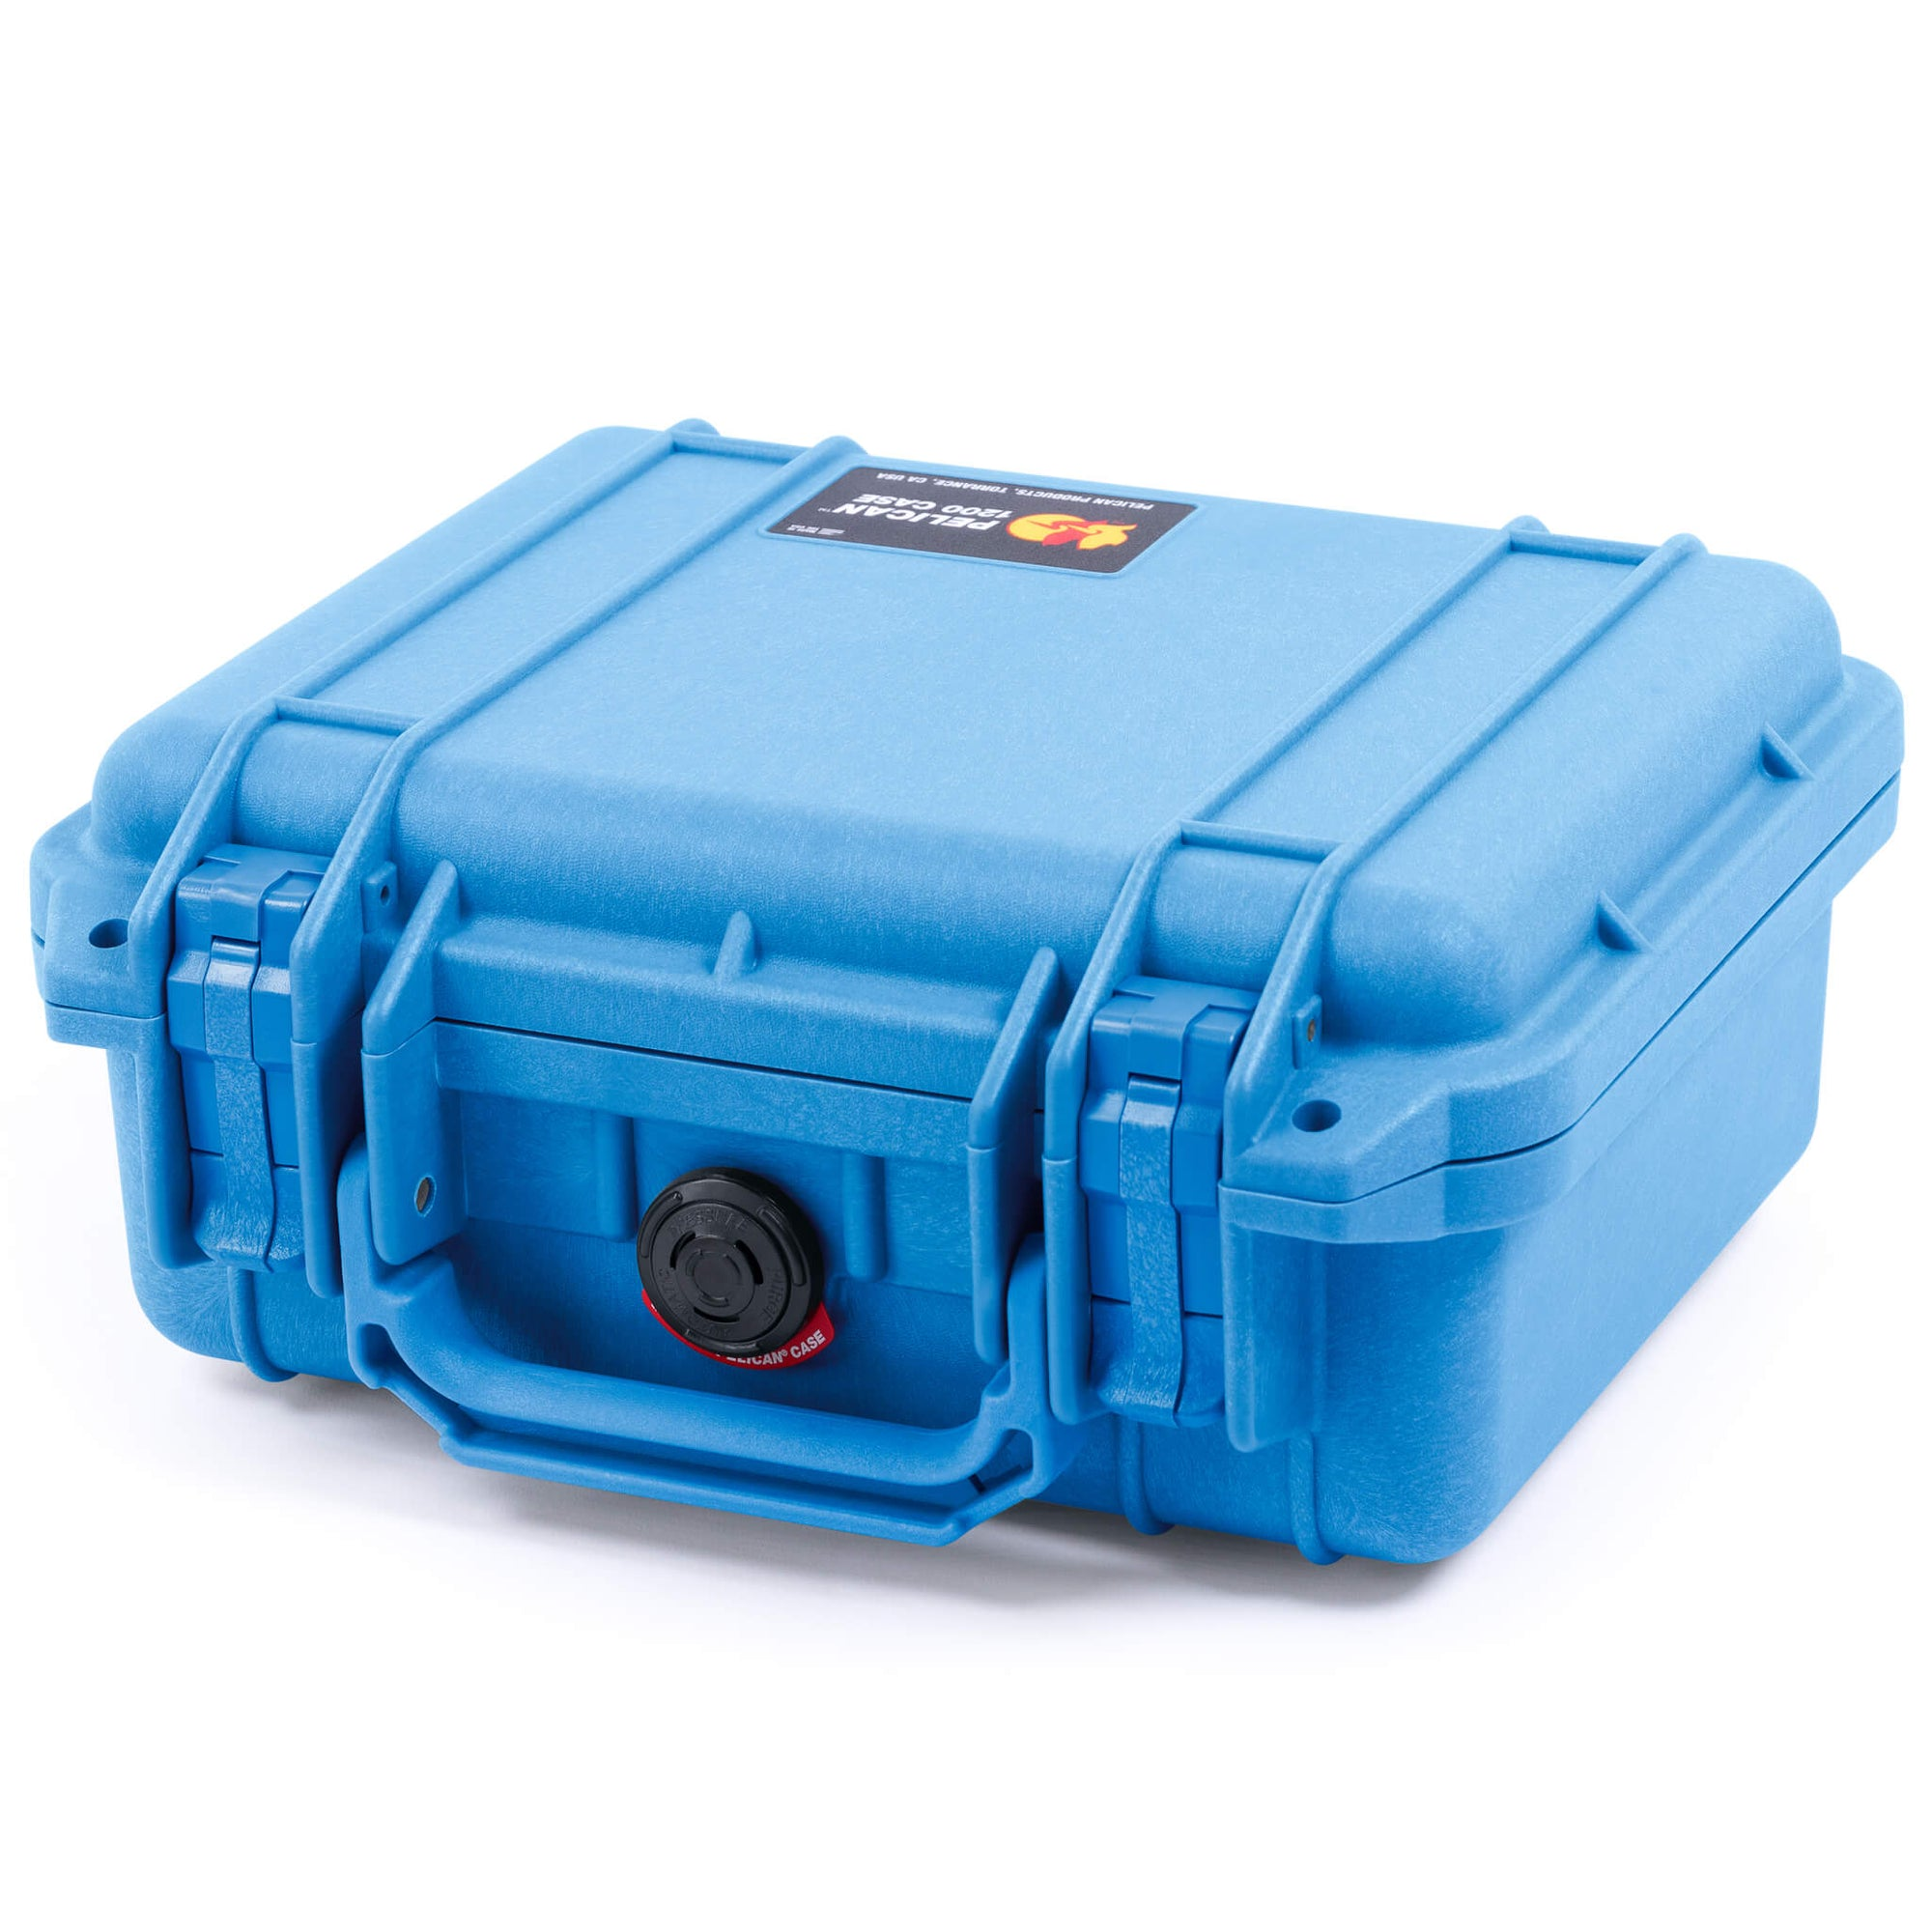 Pelican 1200 Case, Blue - Pelican Color Case